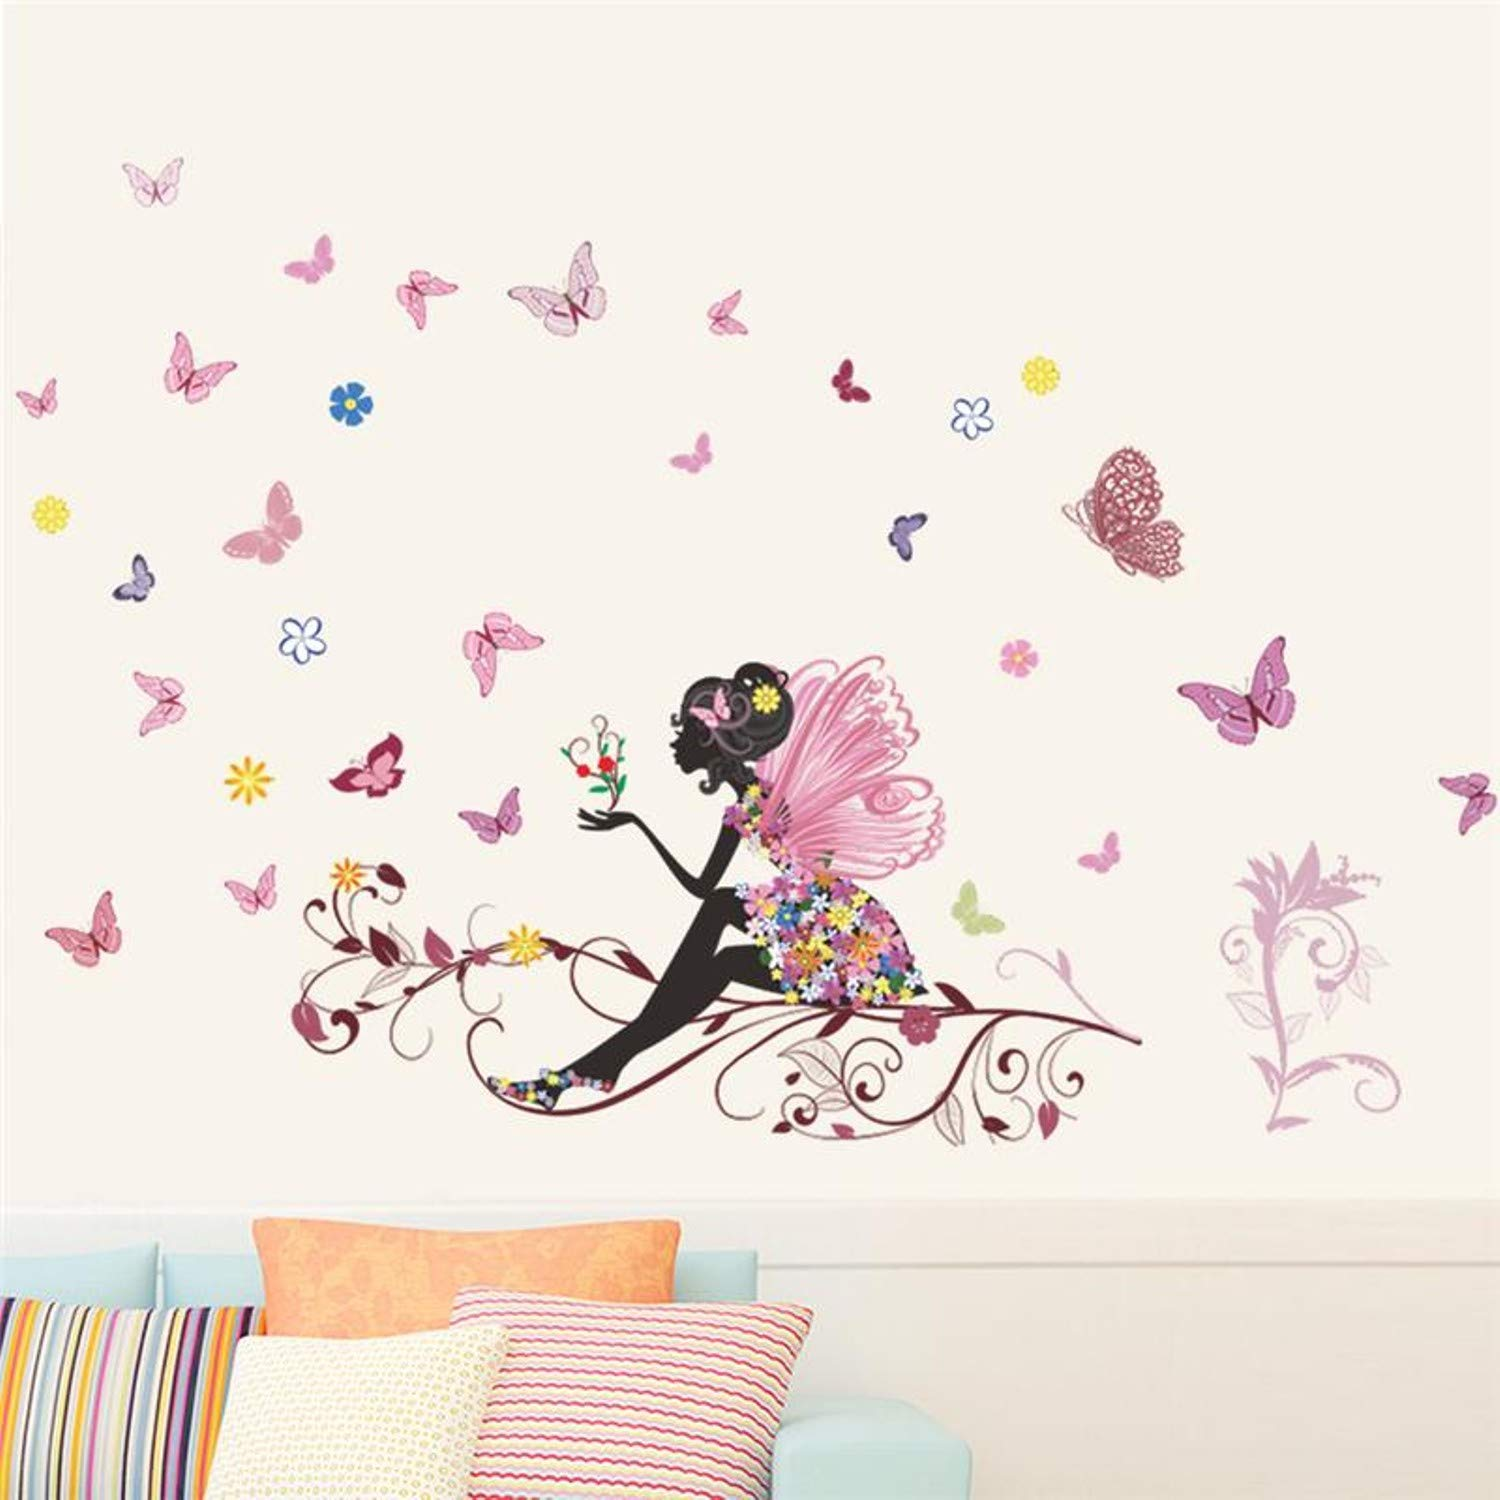 Amazon.com: Chitop Beautiful Girl Butterfly Flower Art Wall Sticker for Home Decor - DIY Personality Mural Child Room Nursery Decoration Print Poster ...